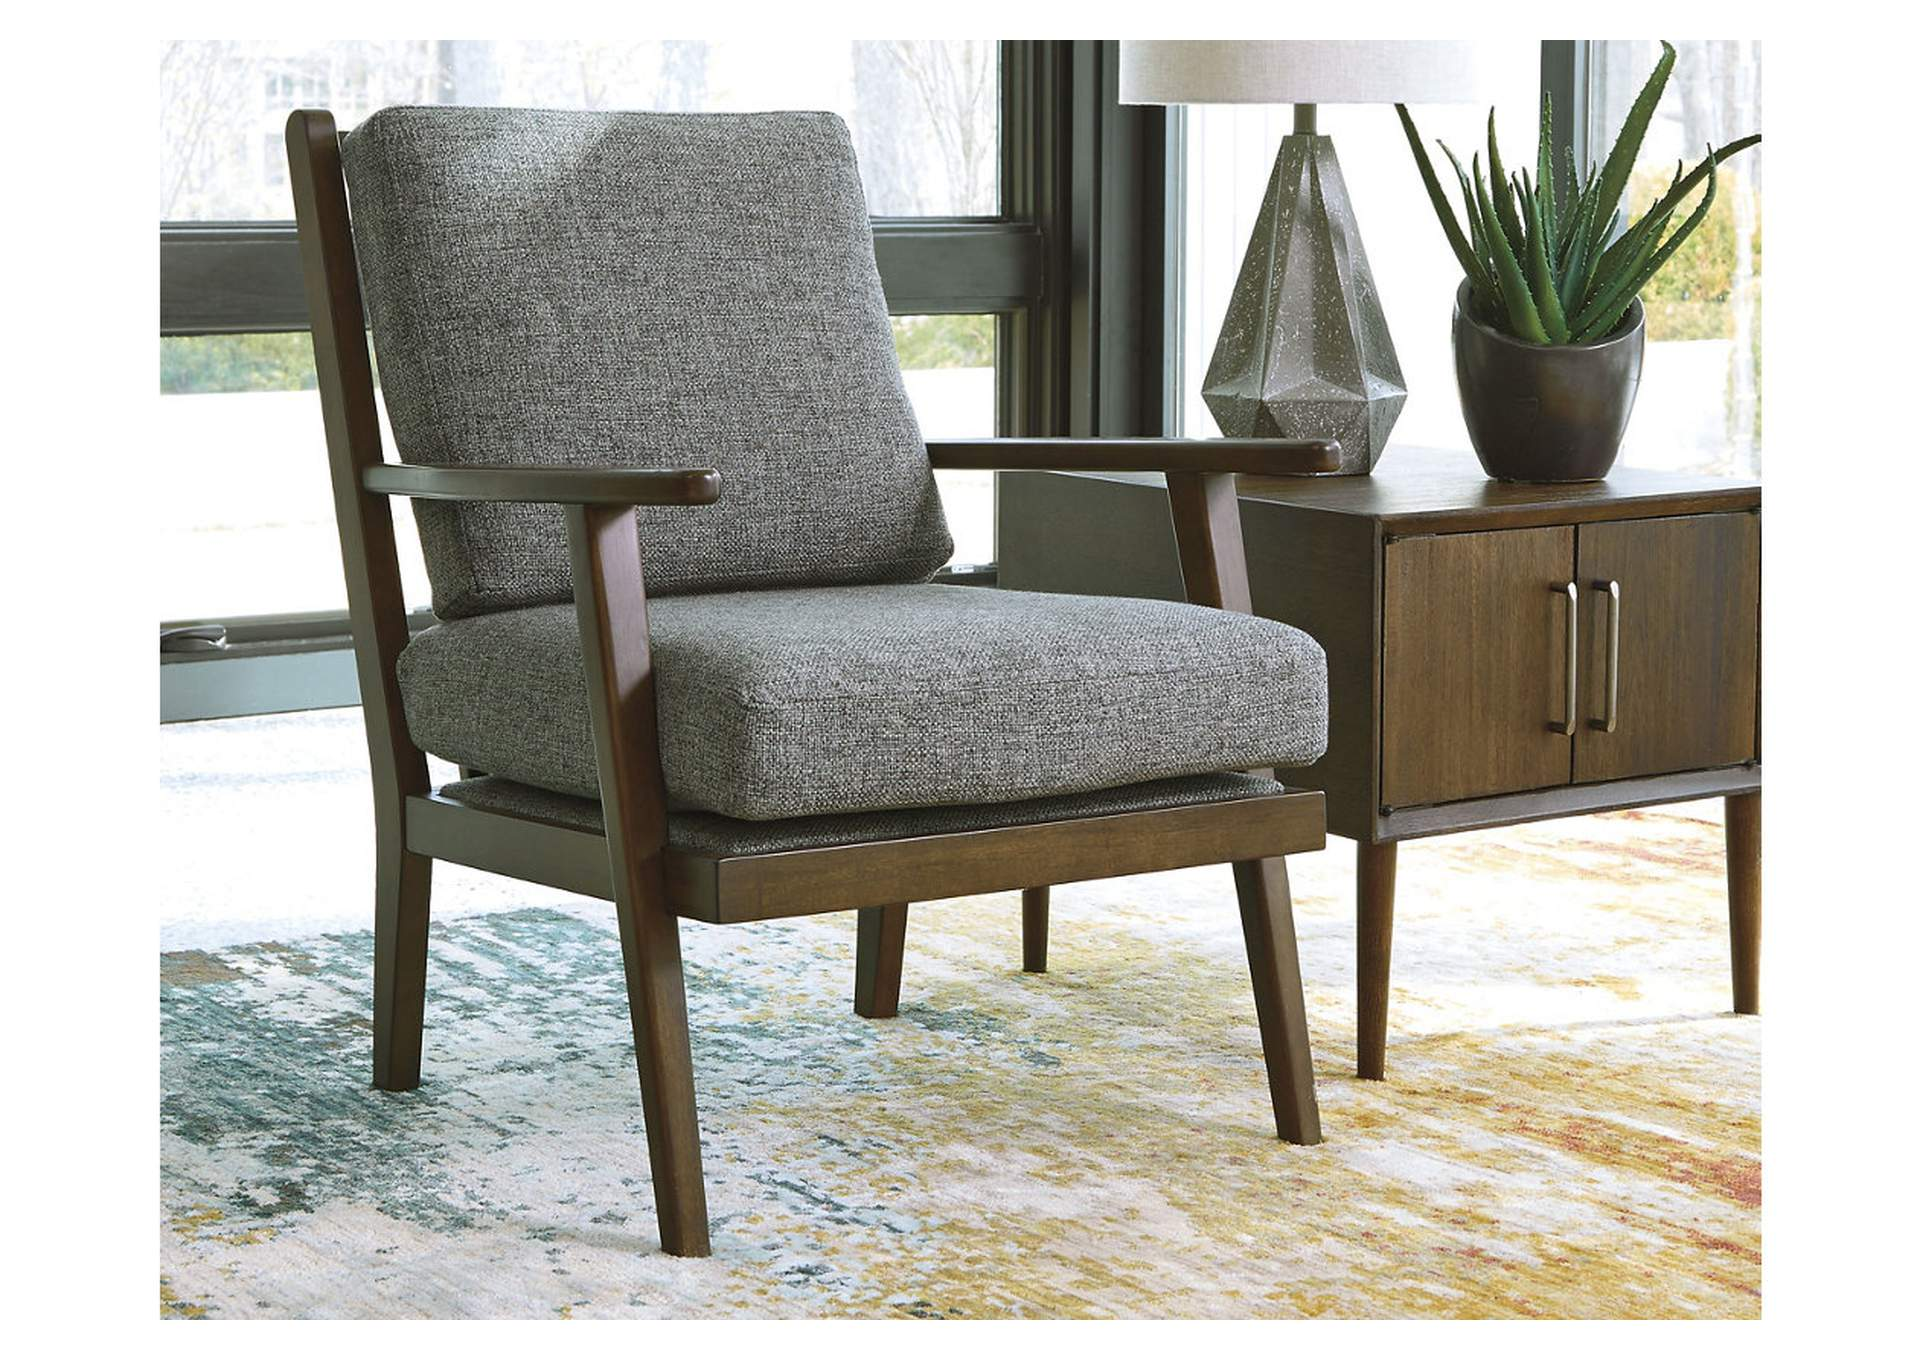 Zardoni Charcoal Accent Chair,Ashley